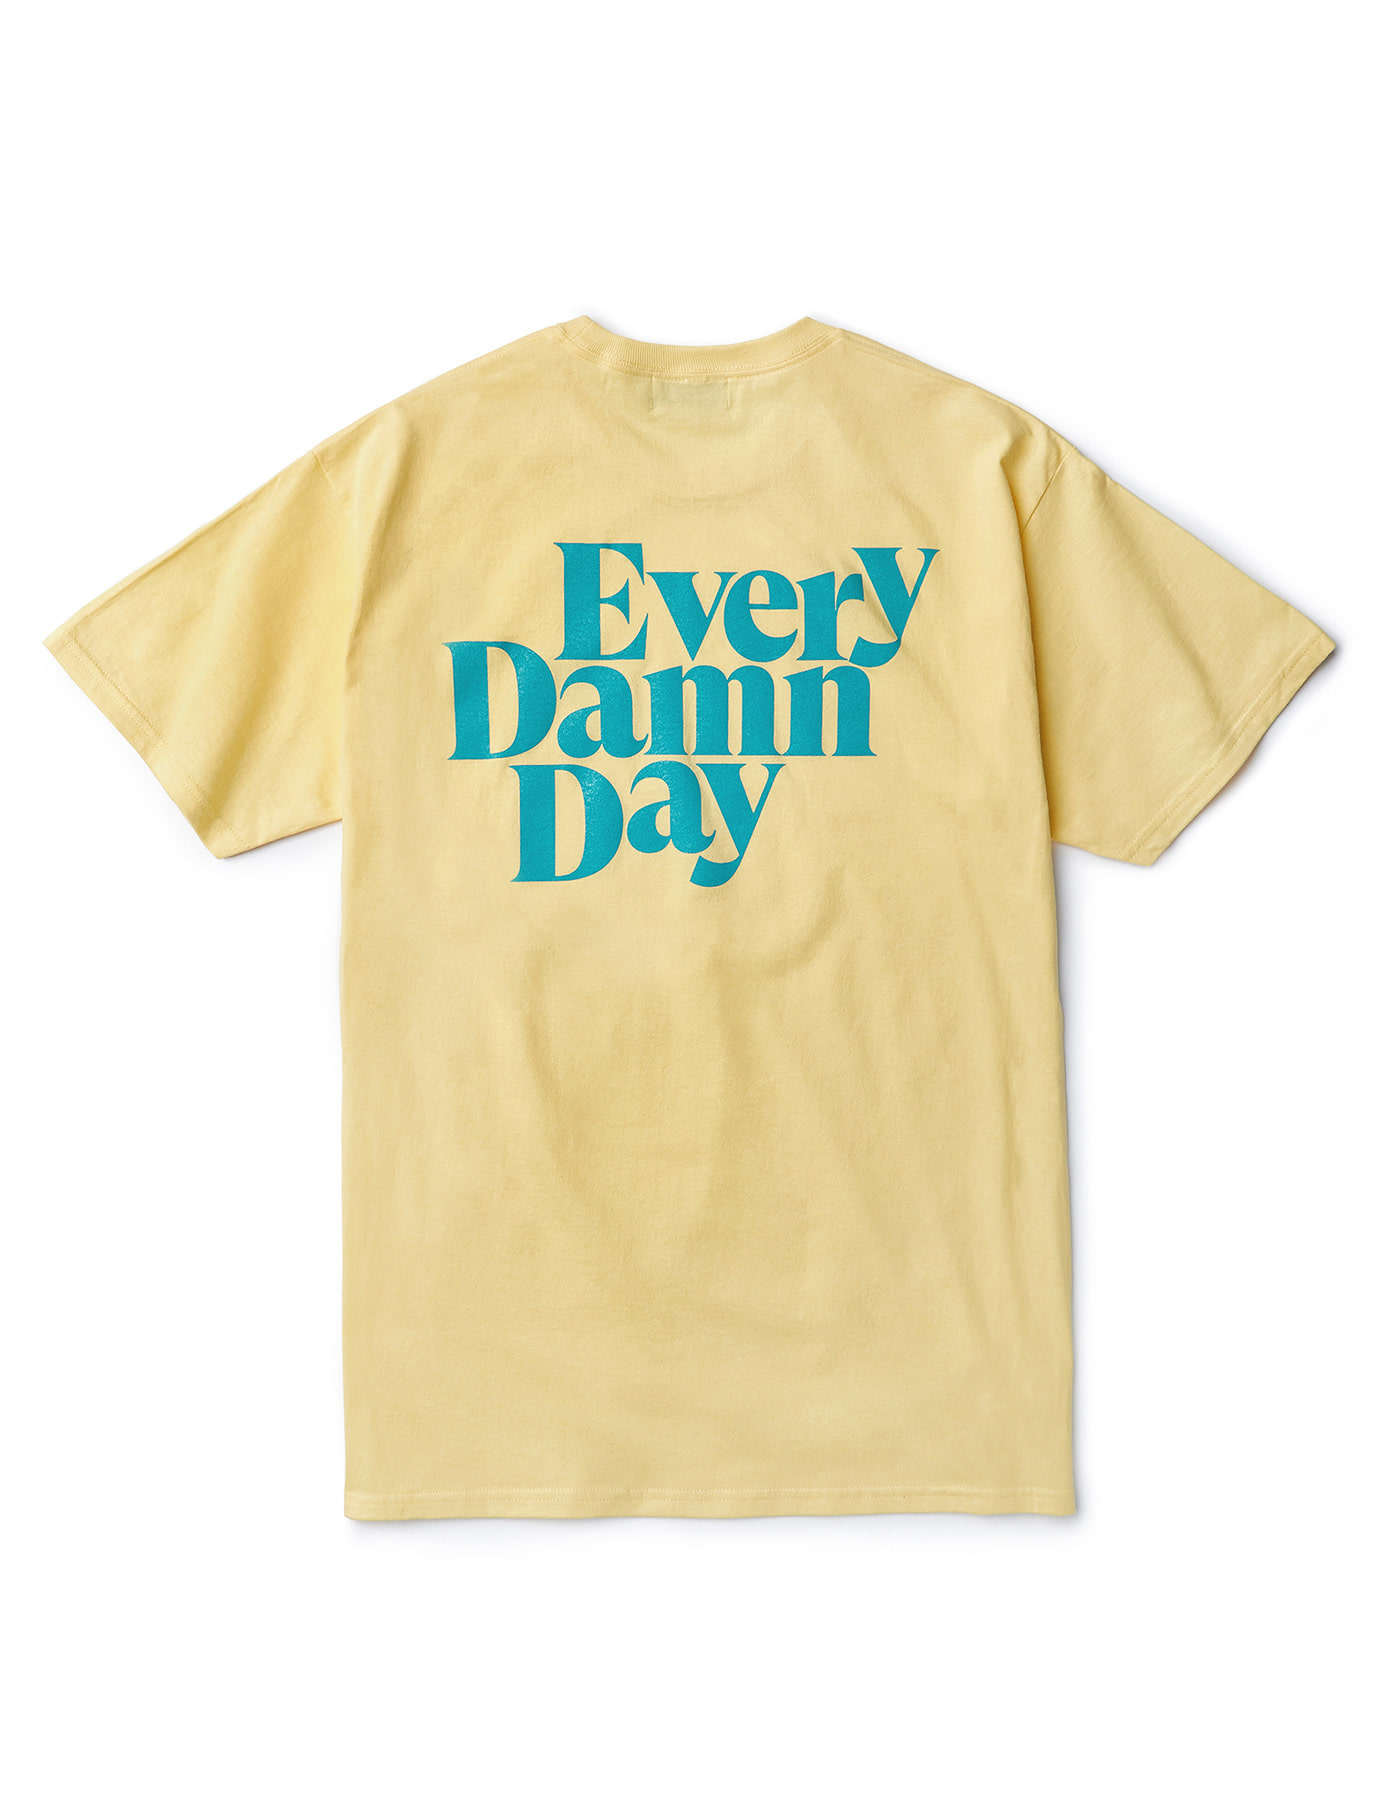 Every Damn Day T-shirts - Banana/Mint